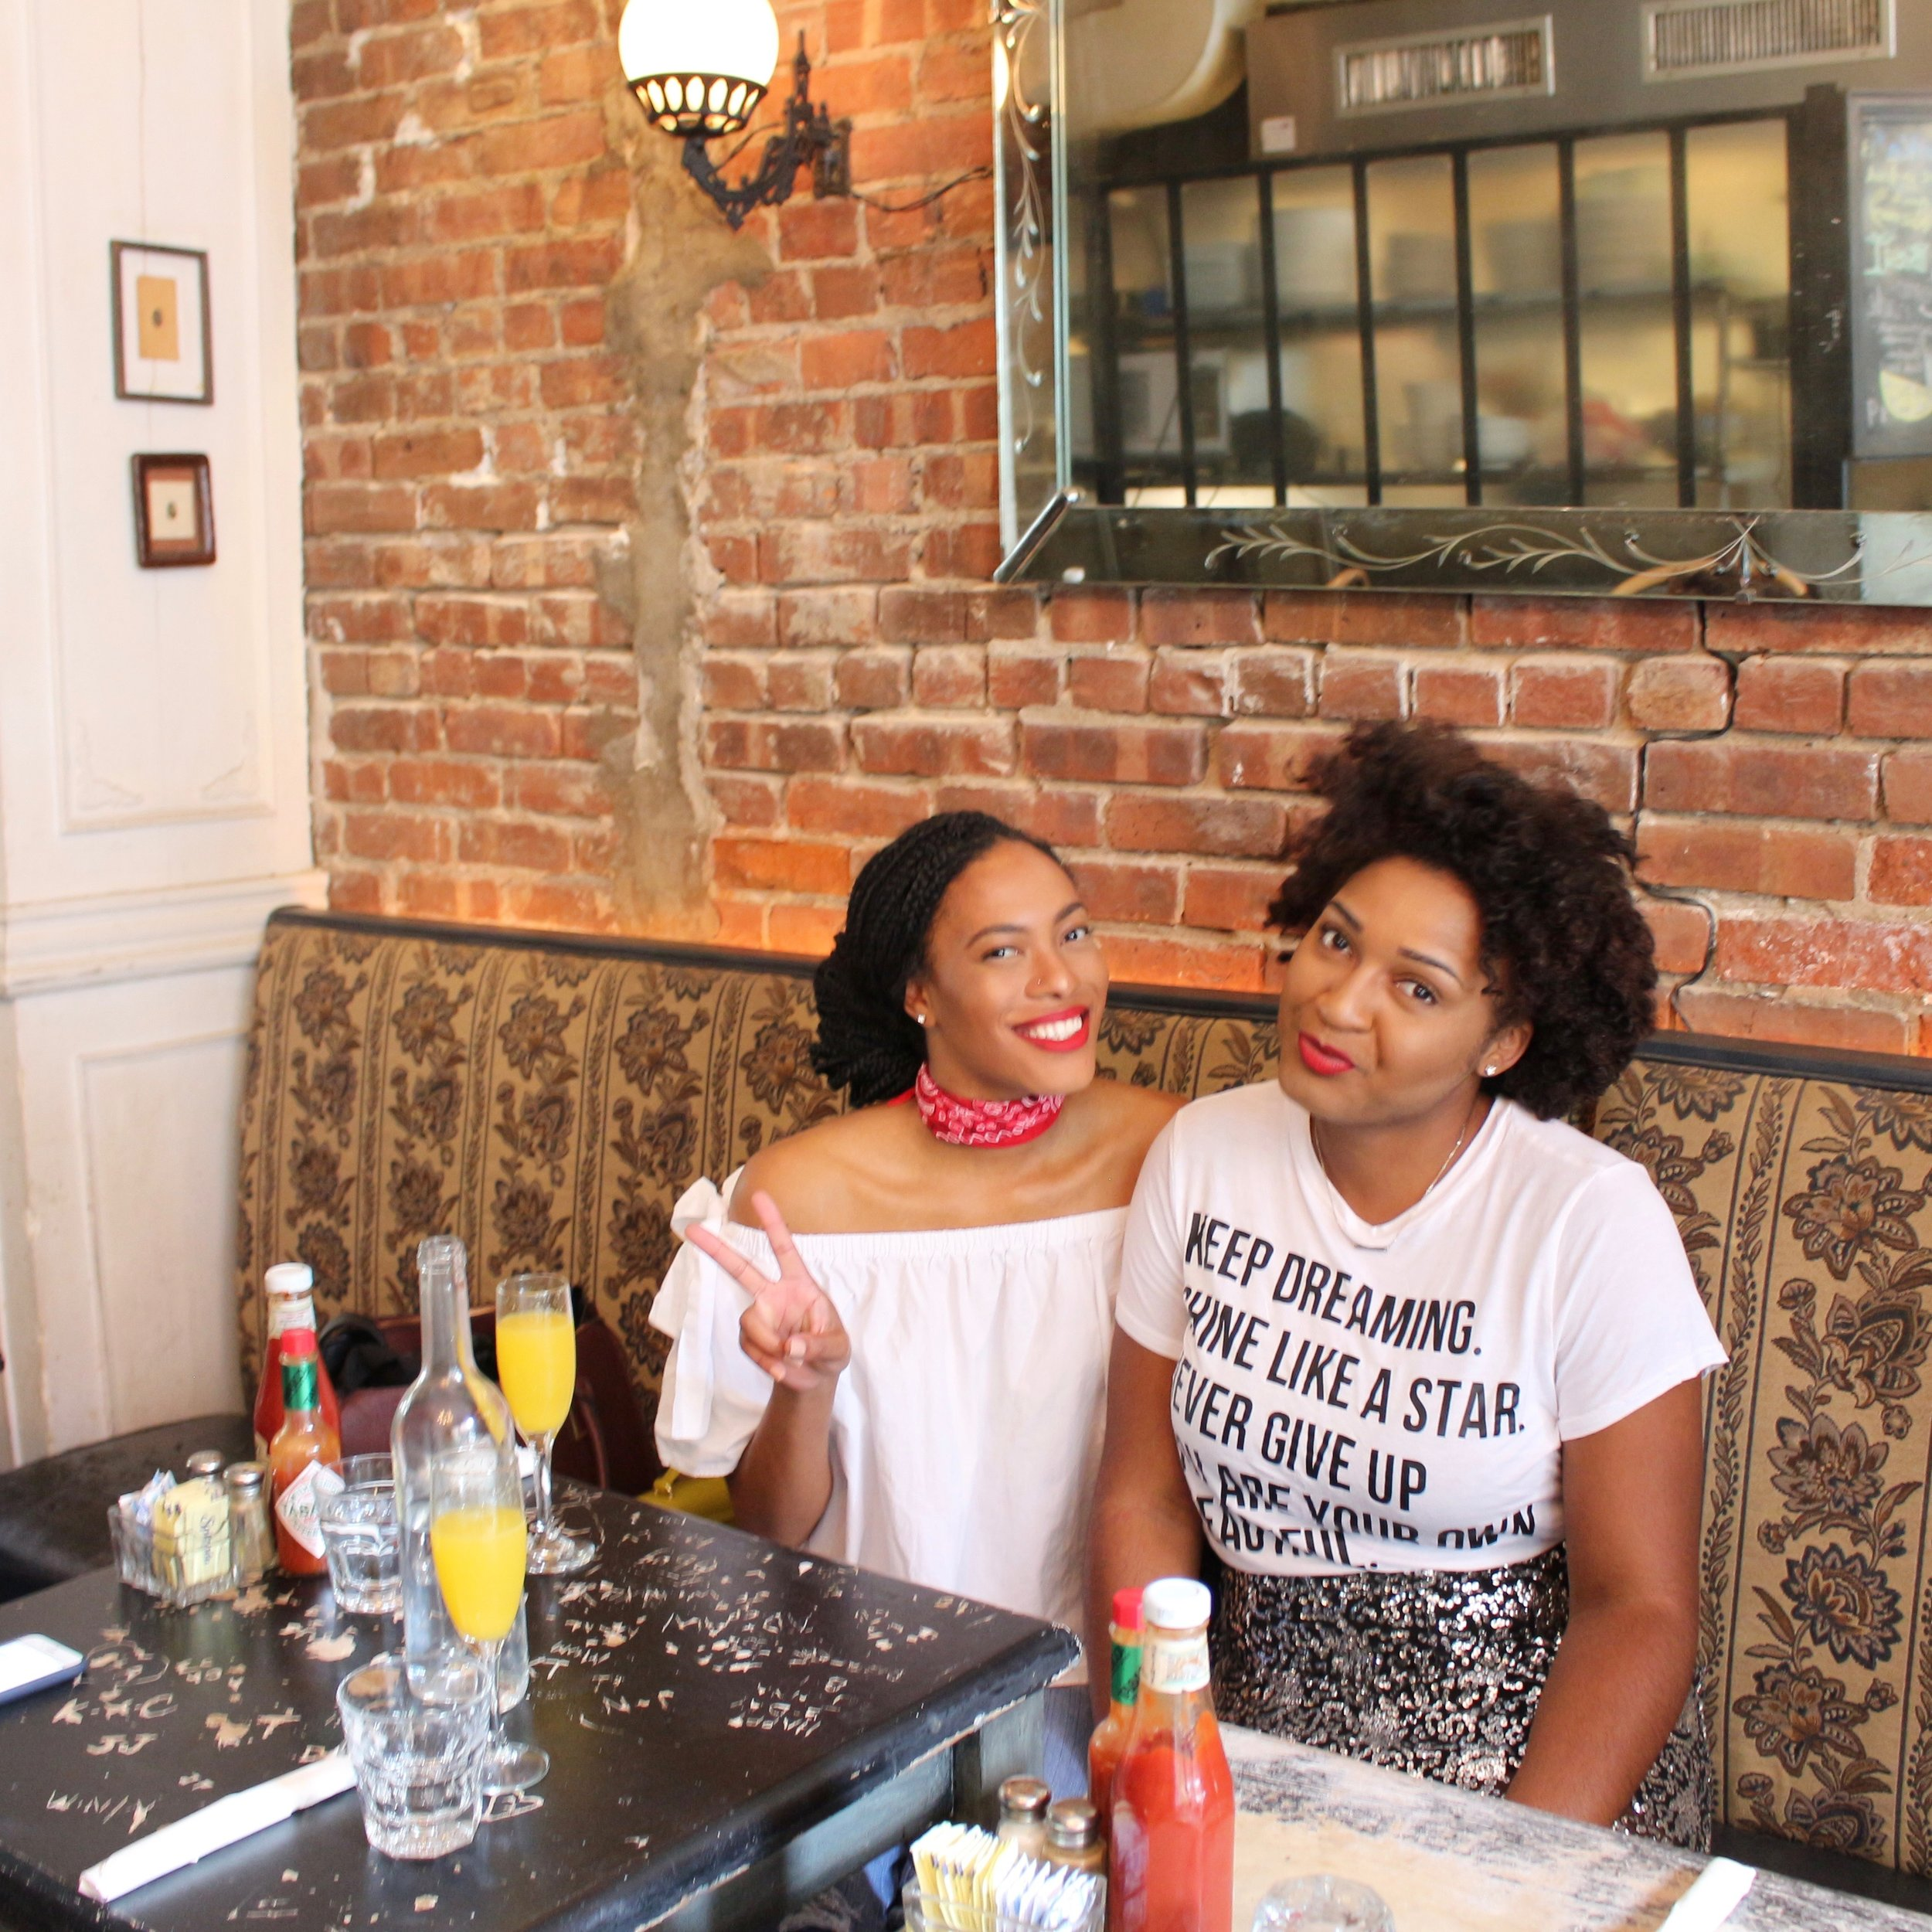 shelby christie and jasmine diane in brooklyn, NY